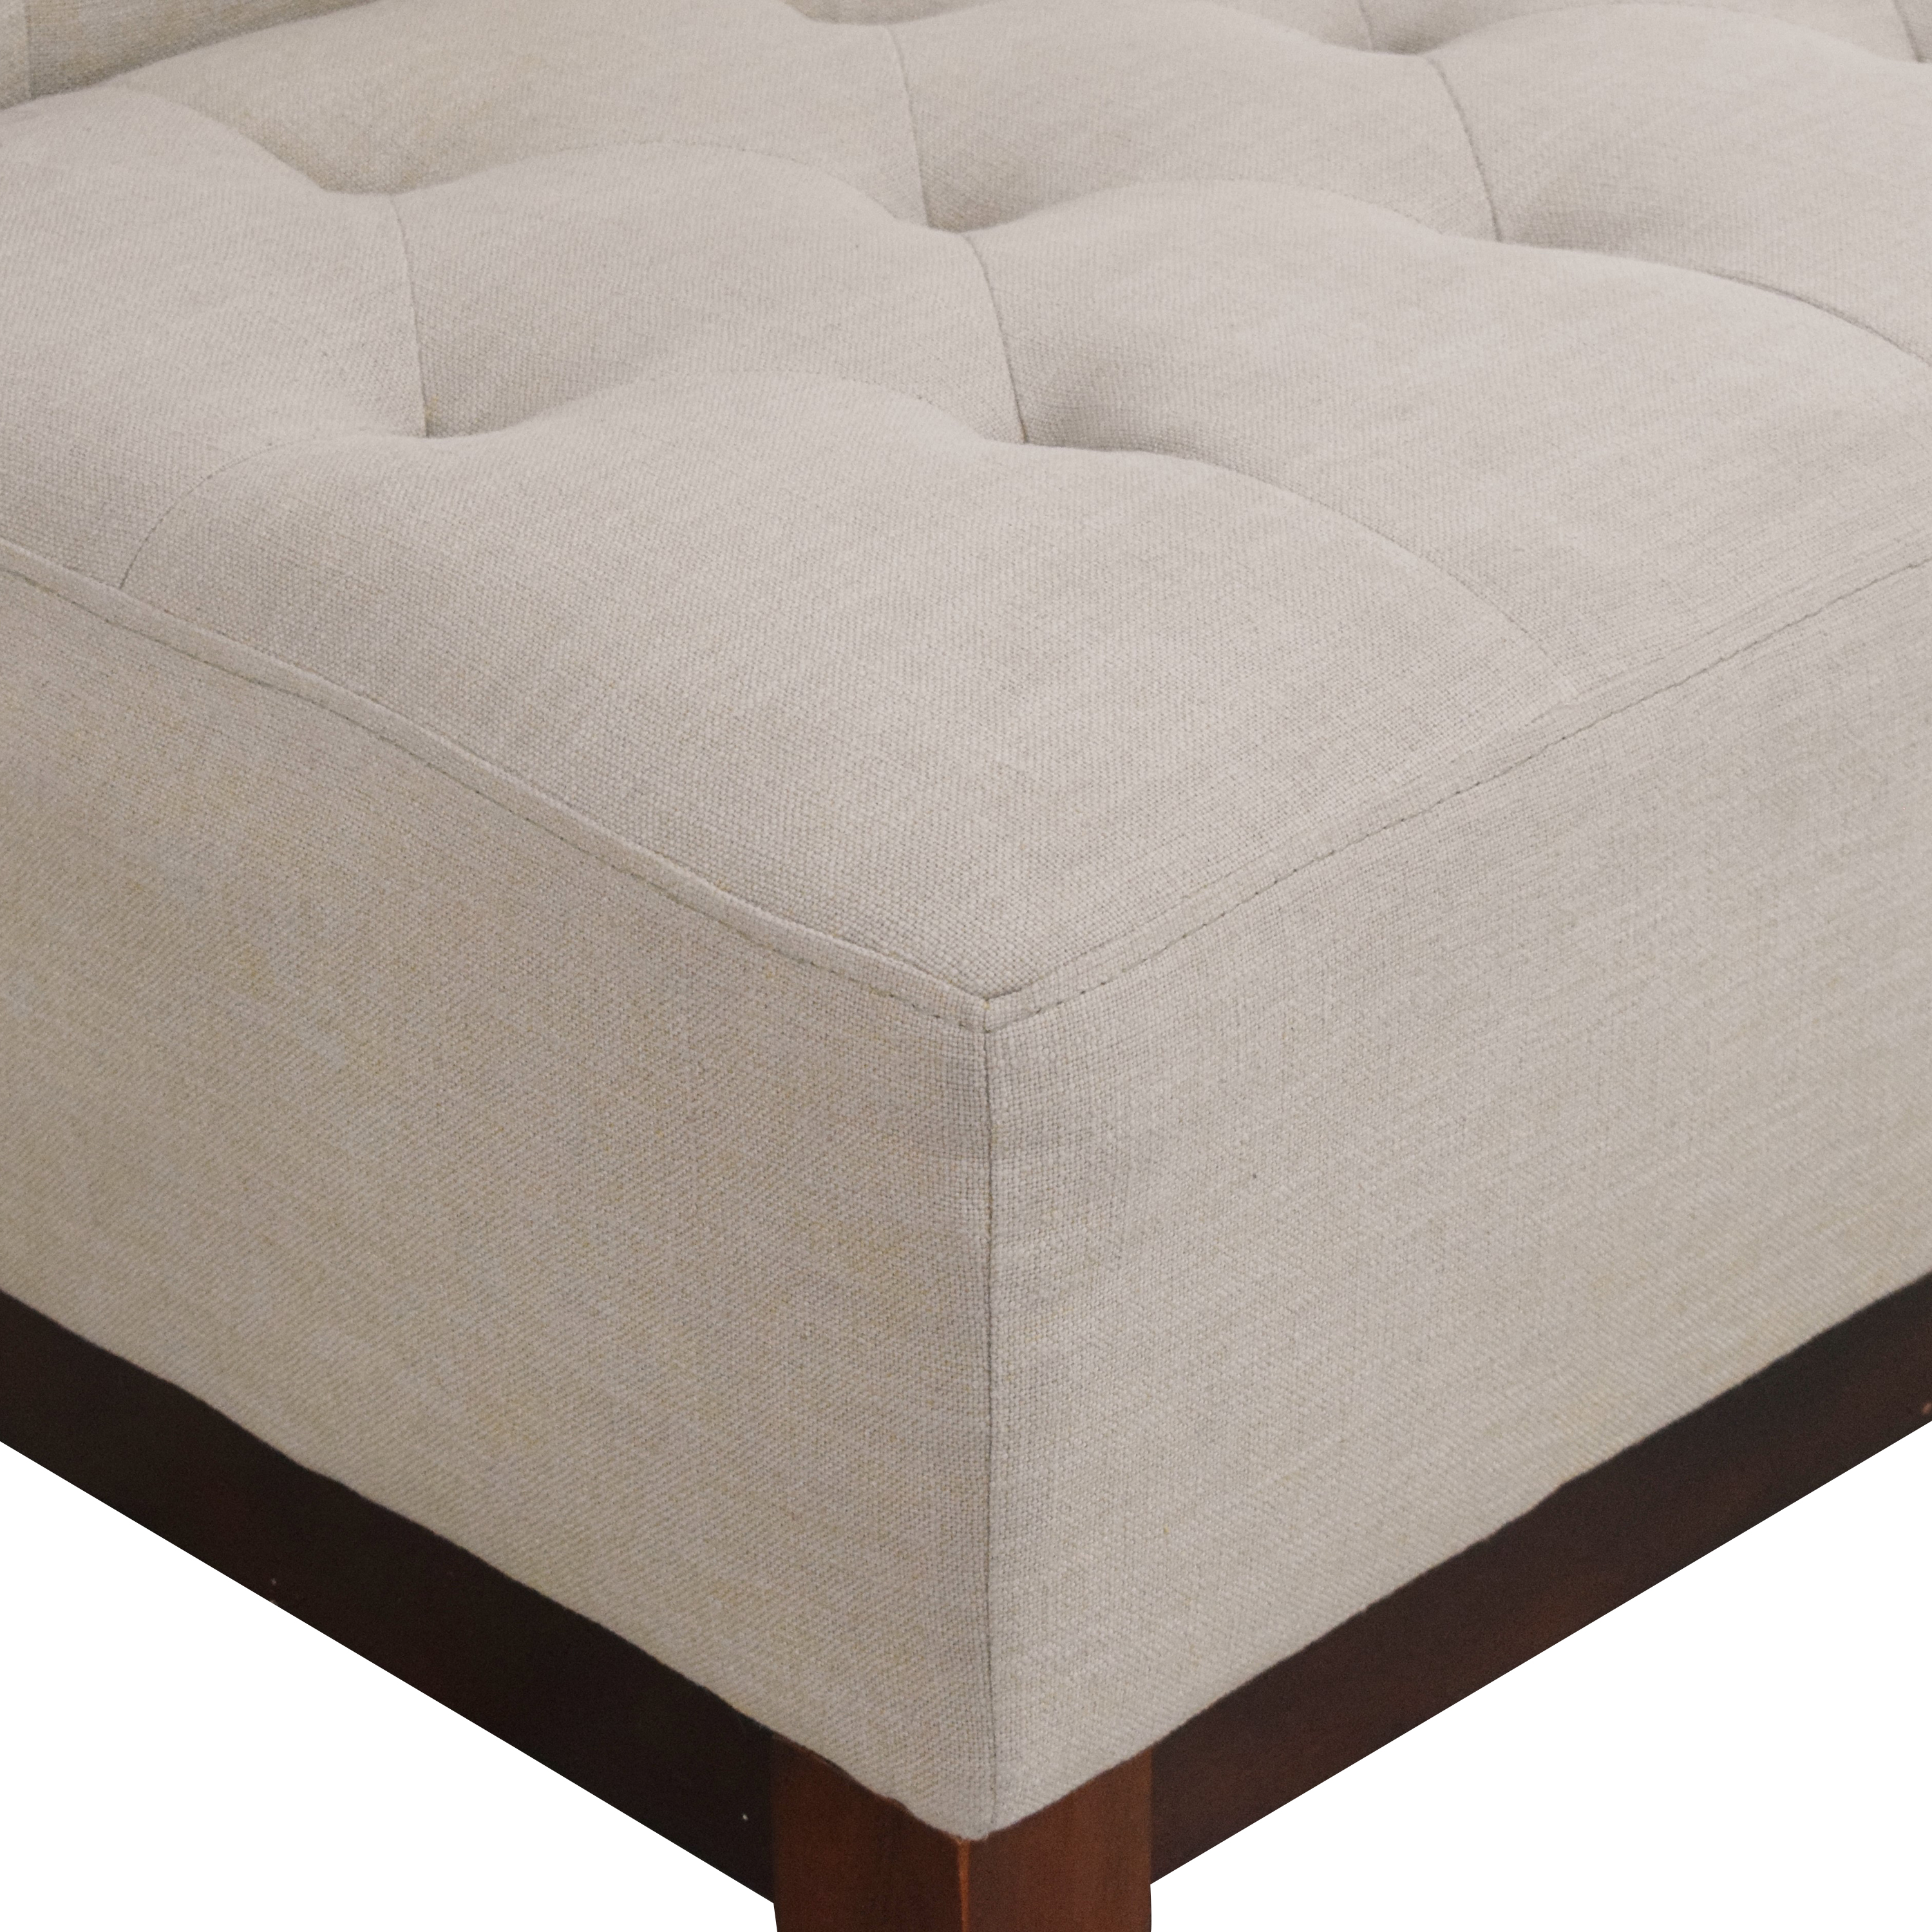 buy Macy's Tufted Slipper Chair Macy's Accent Chairs